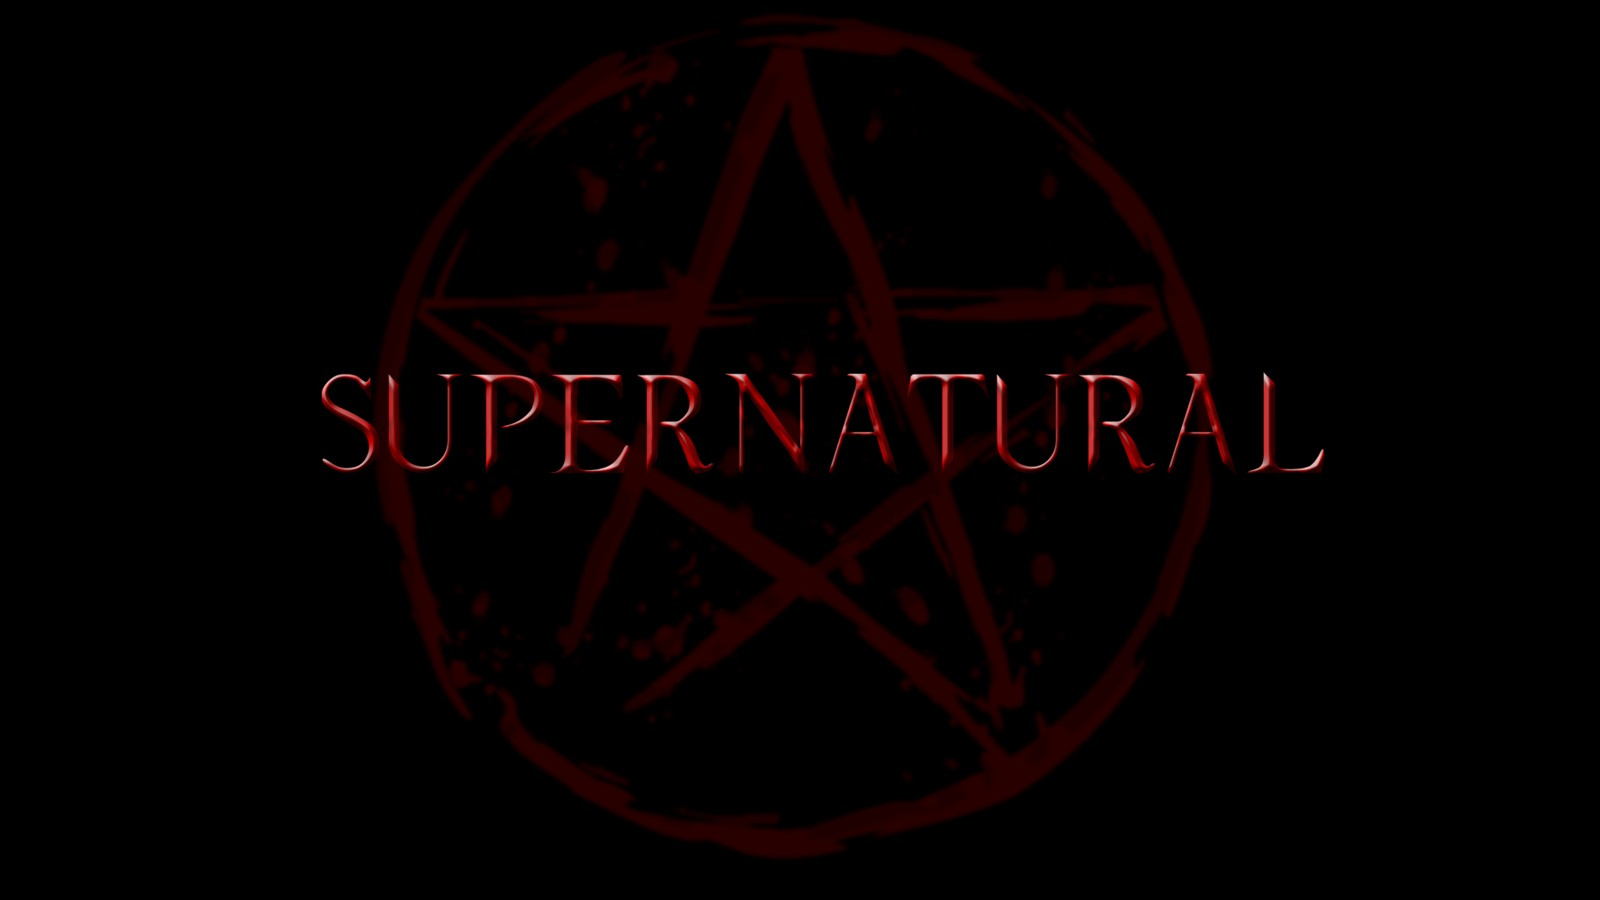 supernatural theme popular - photo #2